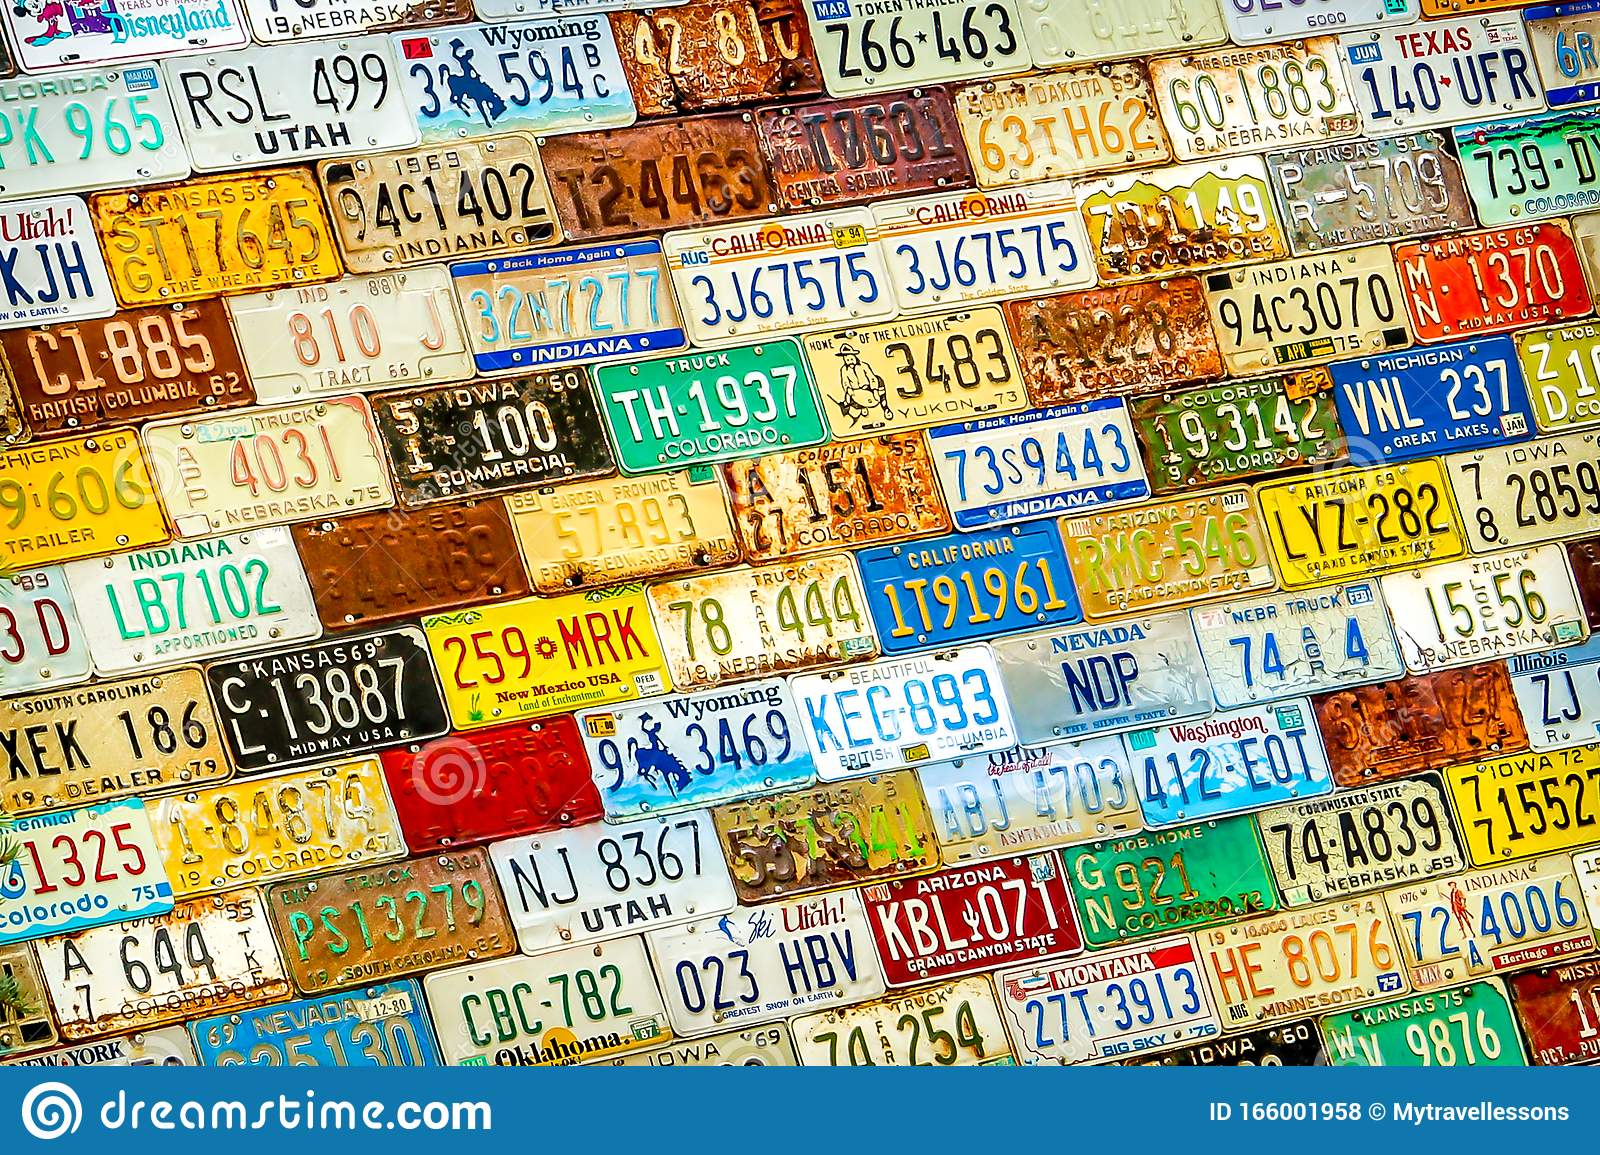 License Plates of America poster 1965